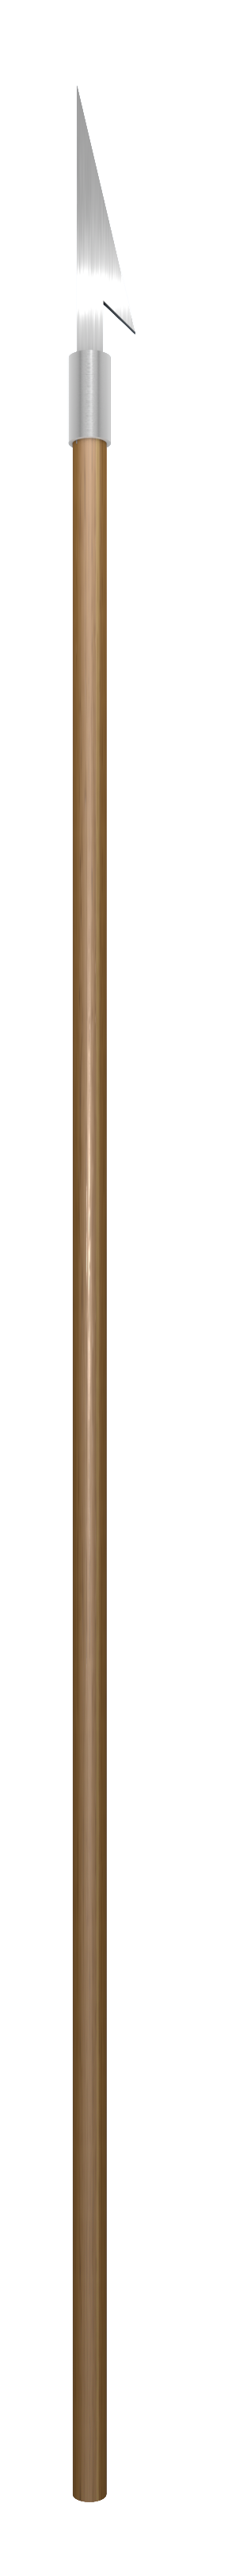 Free download of Spear PNG Picture